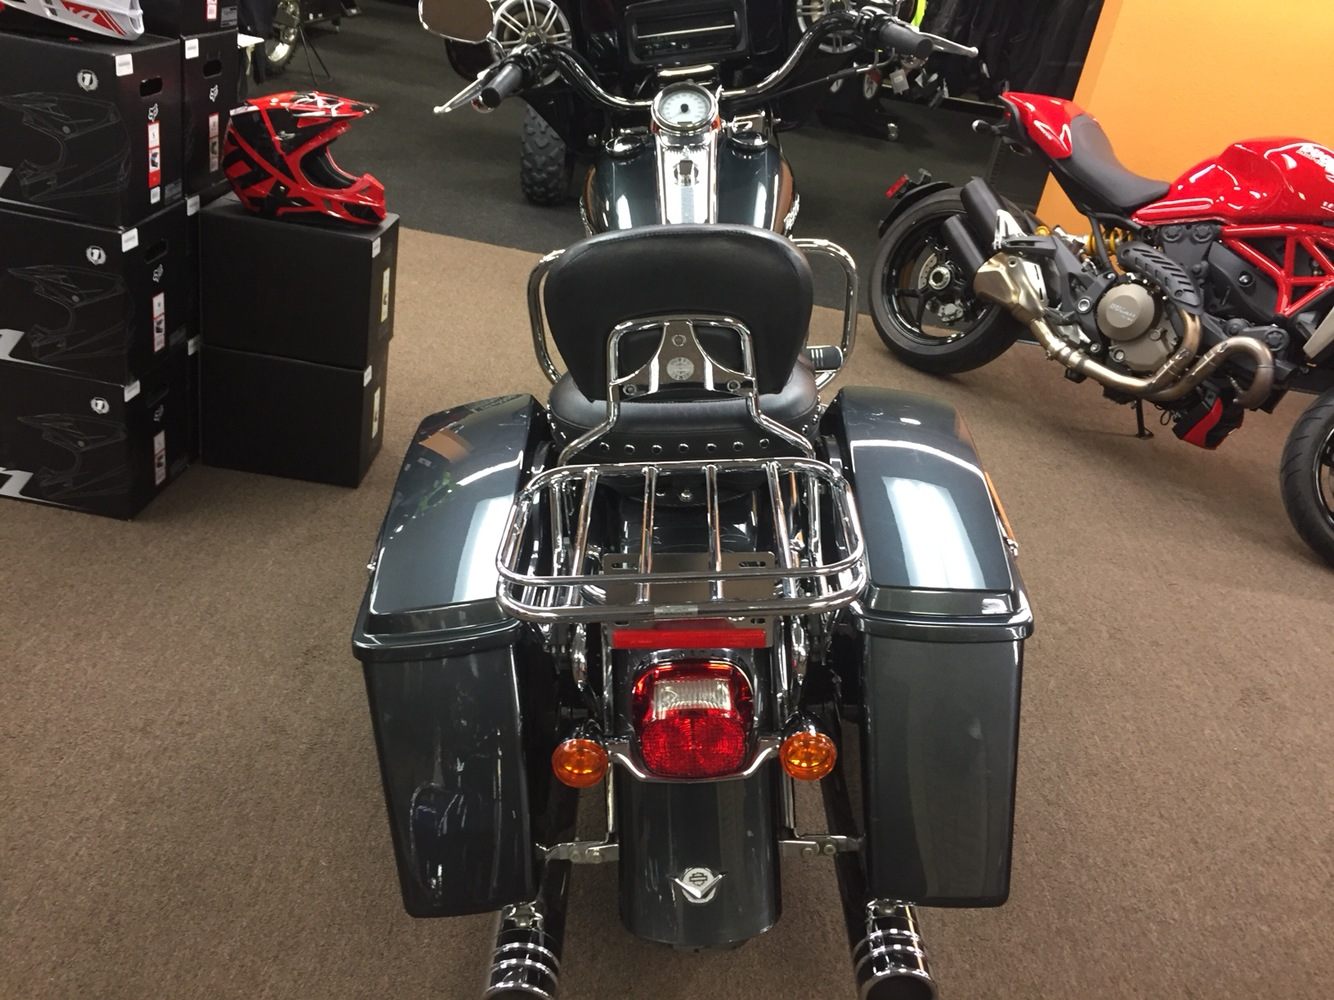 2005 Harley-Davidson Road King Custom in Aurora, Colorado